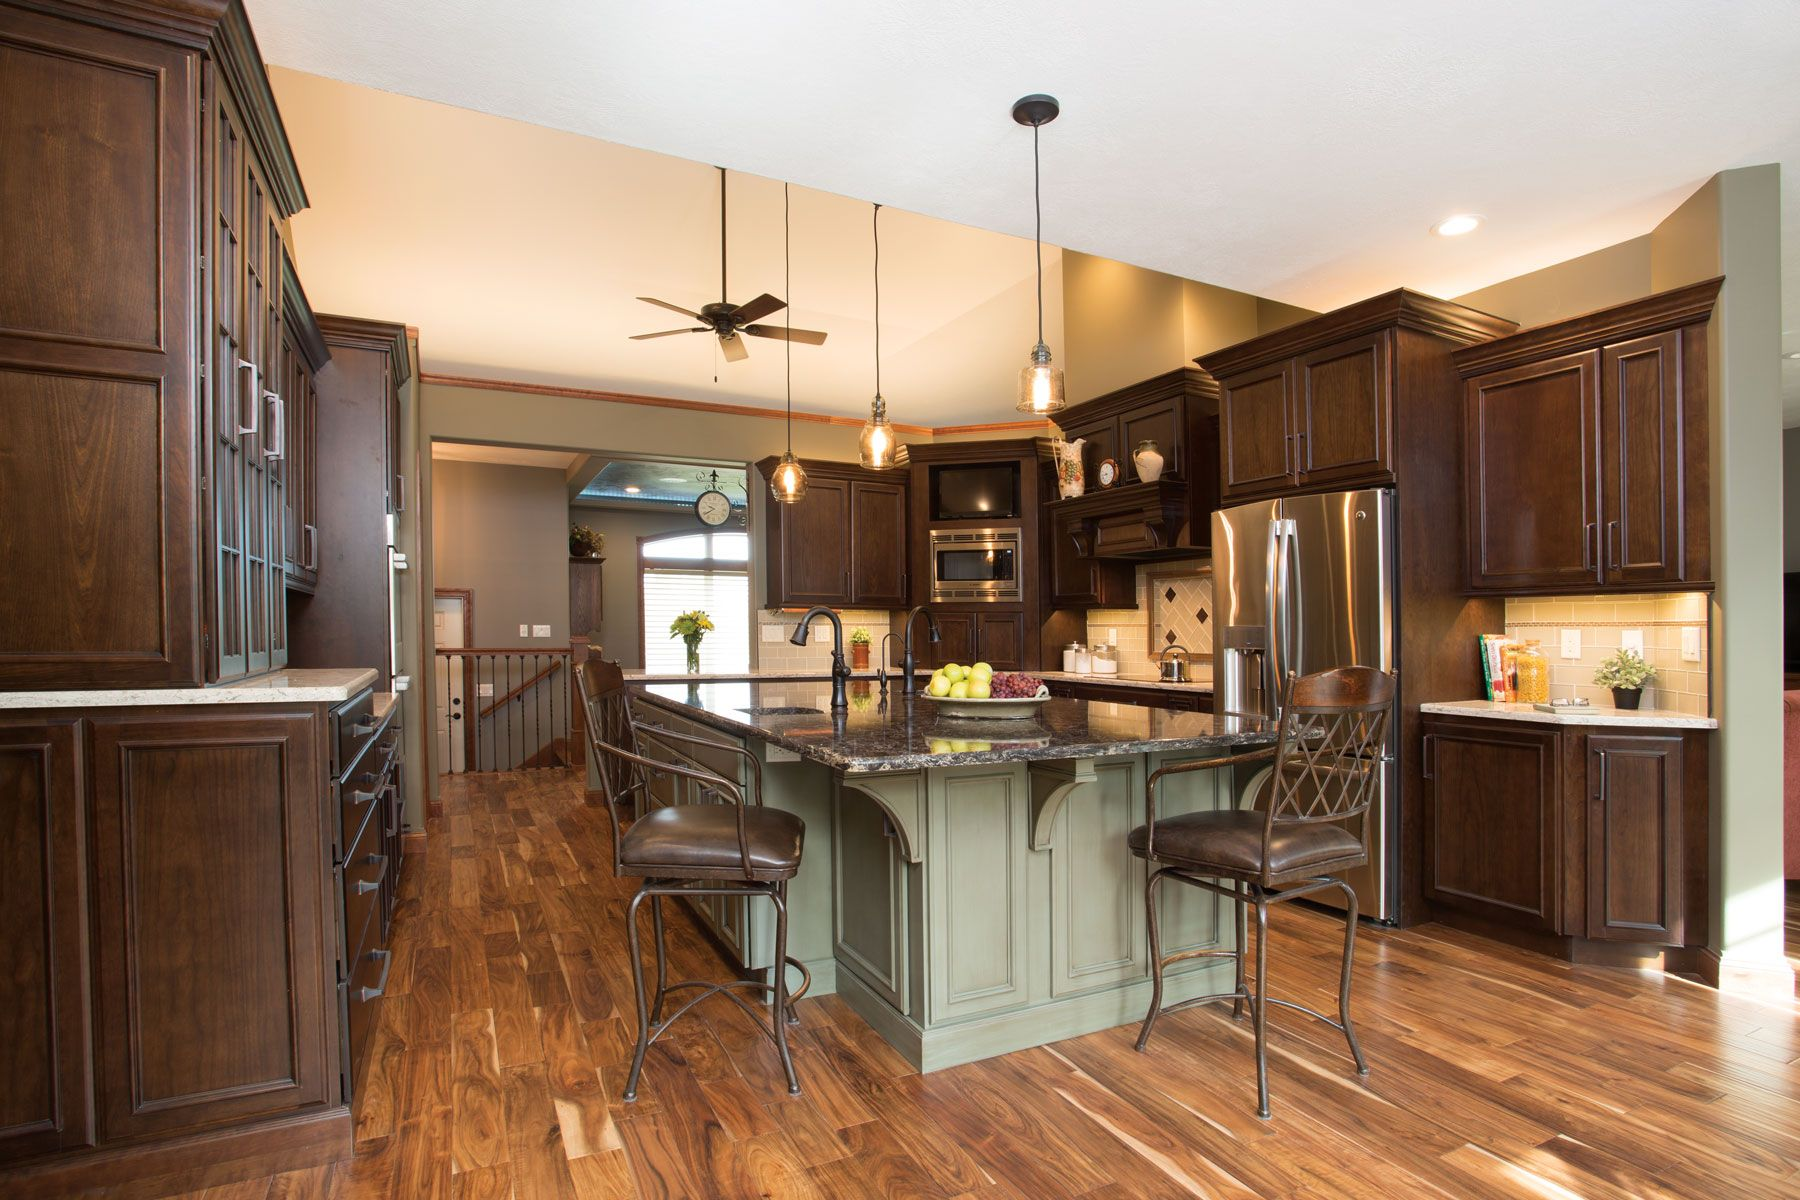 Starmark Cabinetry S Harbor Door Style In Cherry Finished In Hazelnut Was Used For The Perime Kitchen Decor Modern Modern Kitchen Design Kitchen Cabinets Decor